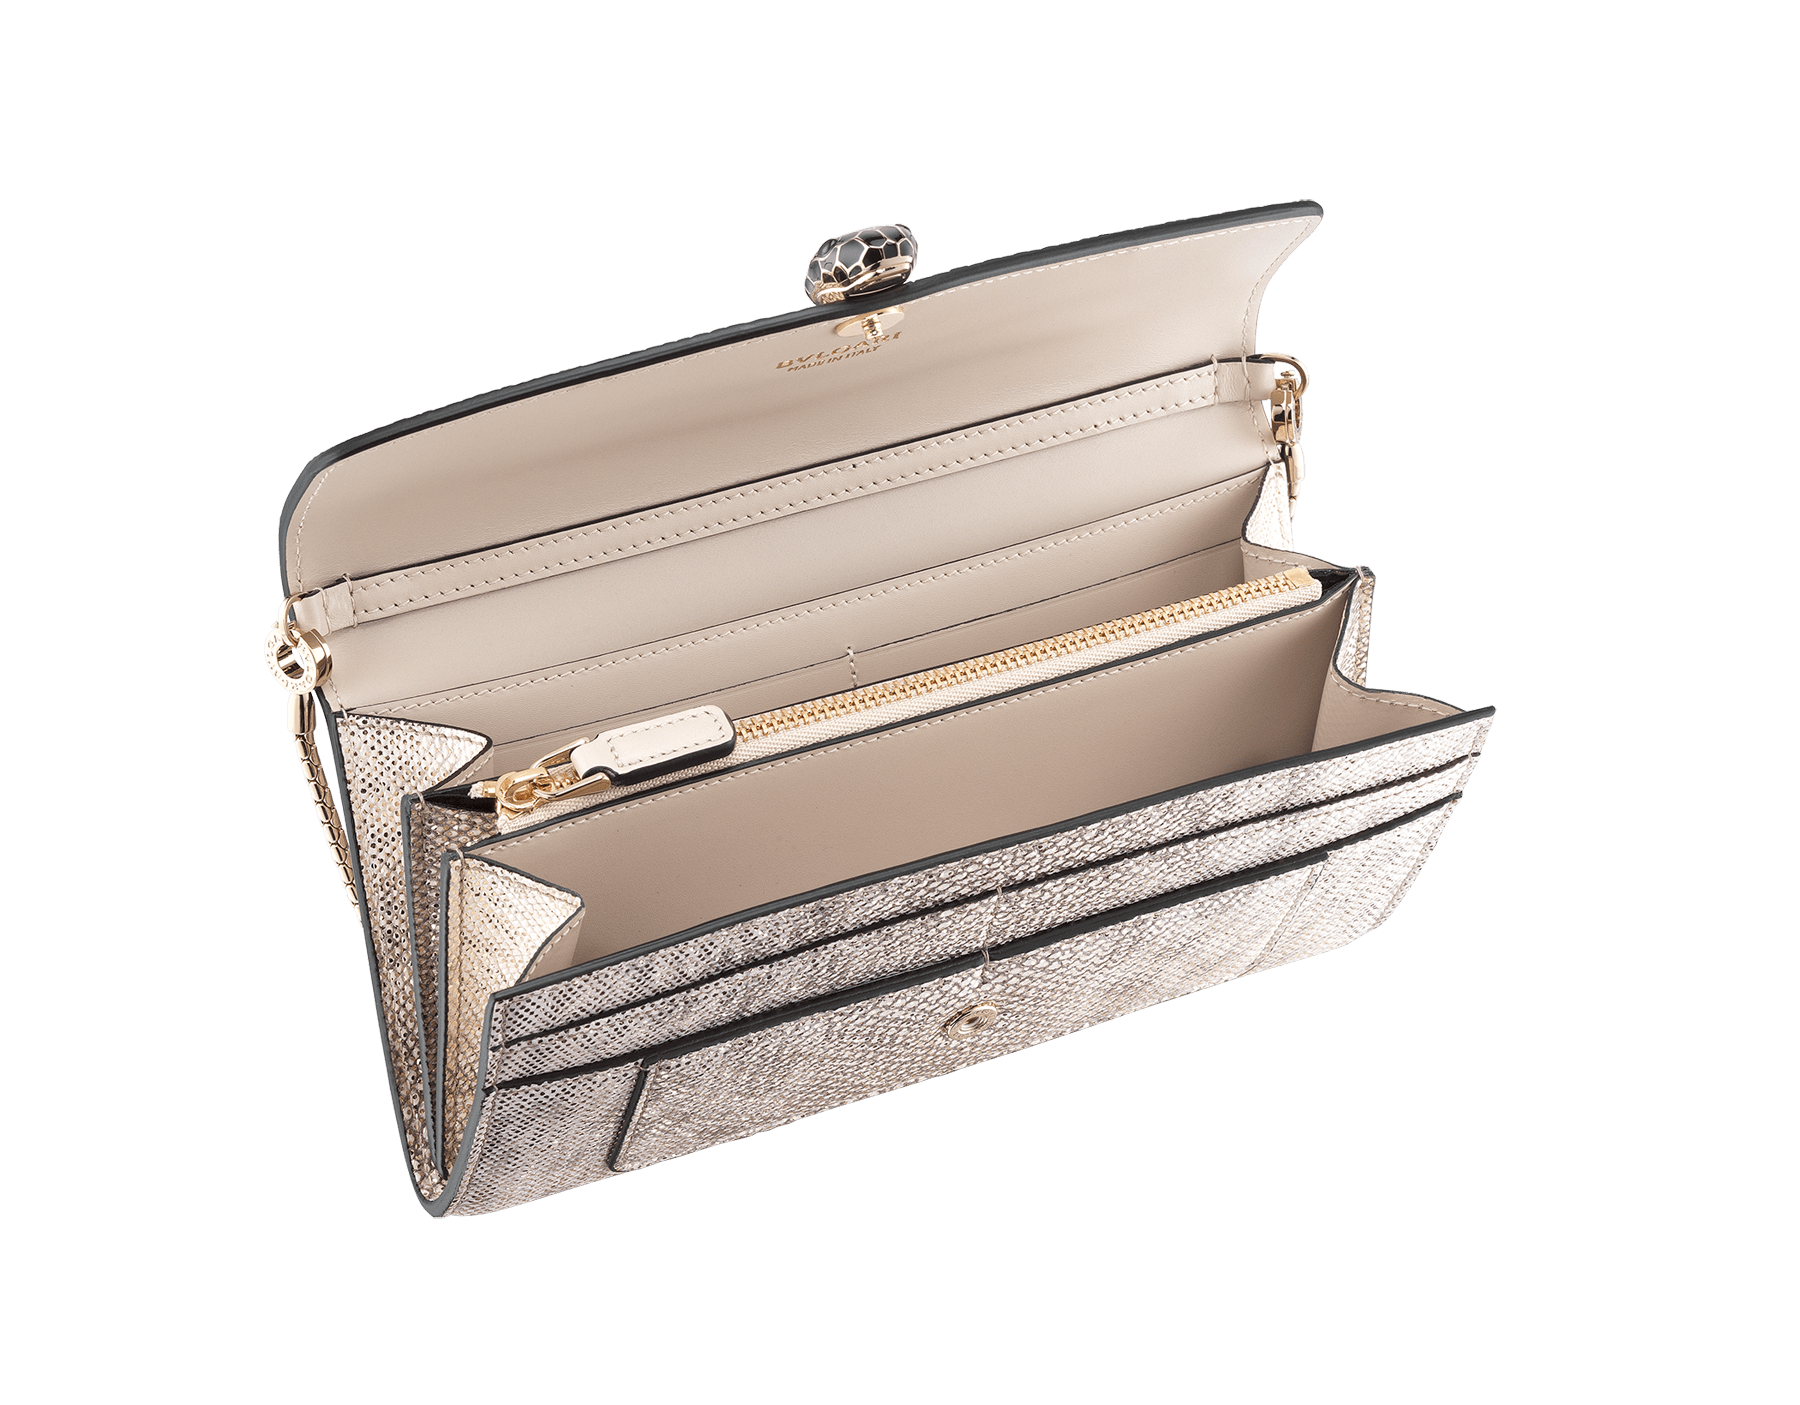 Wallet pouch in silver metallic karung skin and black calf leather, with black nappa lining. Brass light gold plated Serpenti head stud closure in black and white enamel, with black onyx eyes. SEA-WLT-CHAIN-16CC-MK image 2